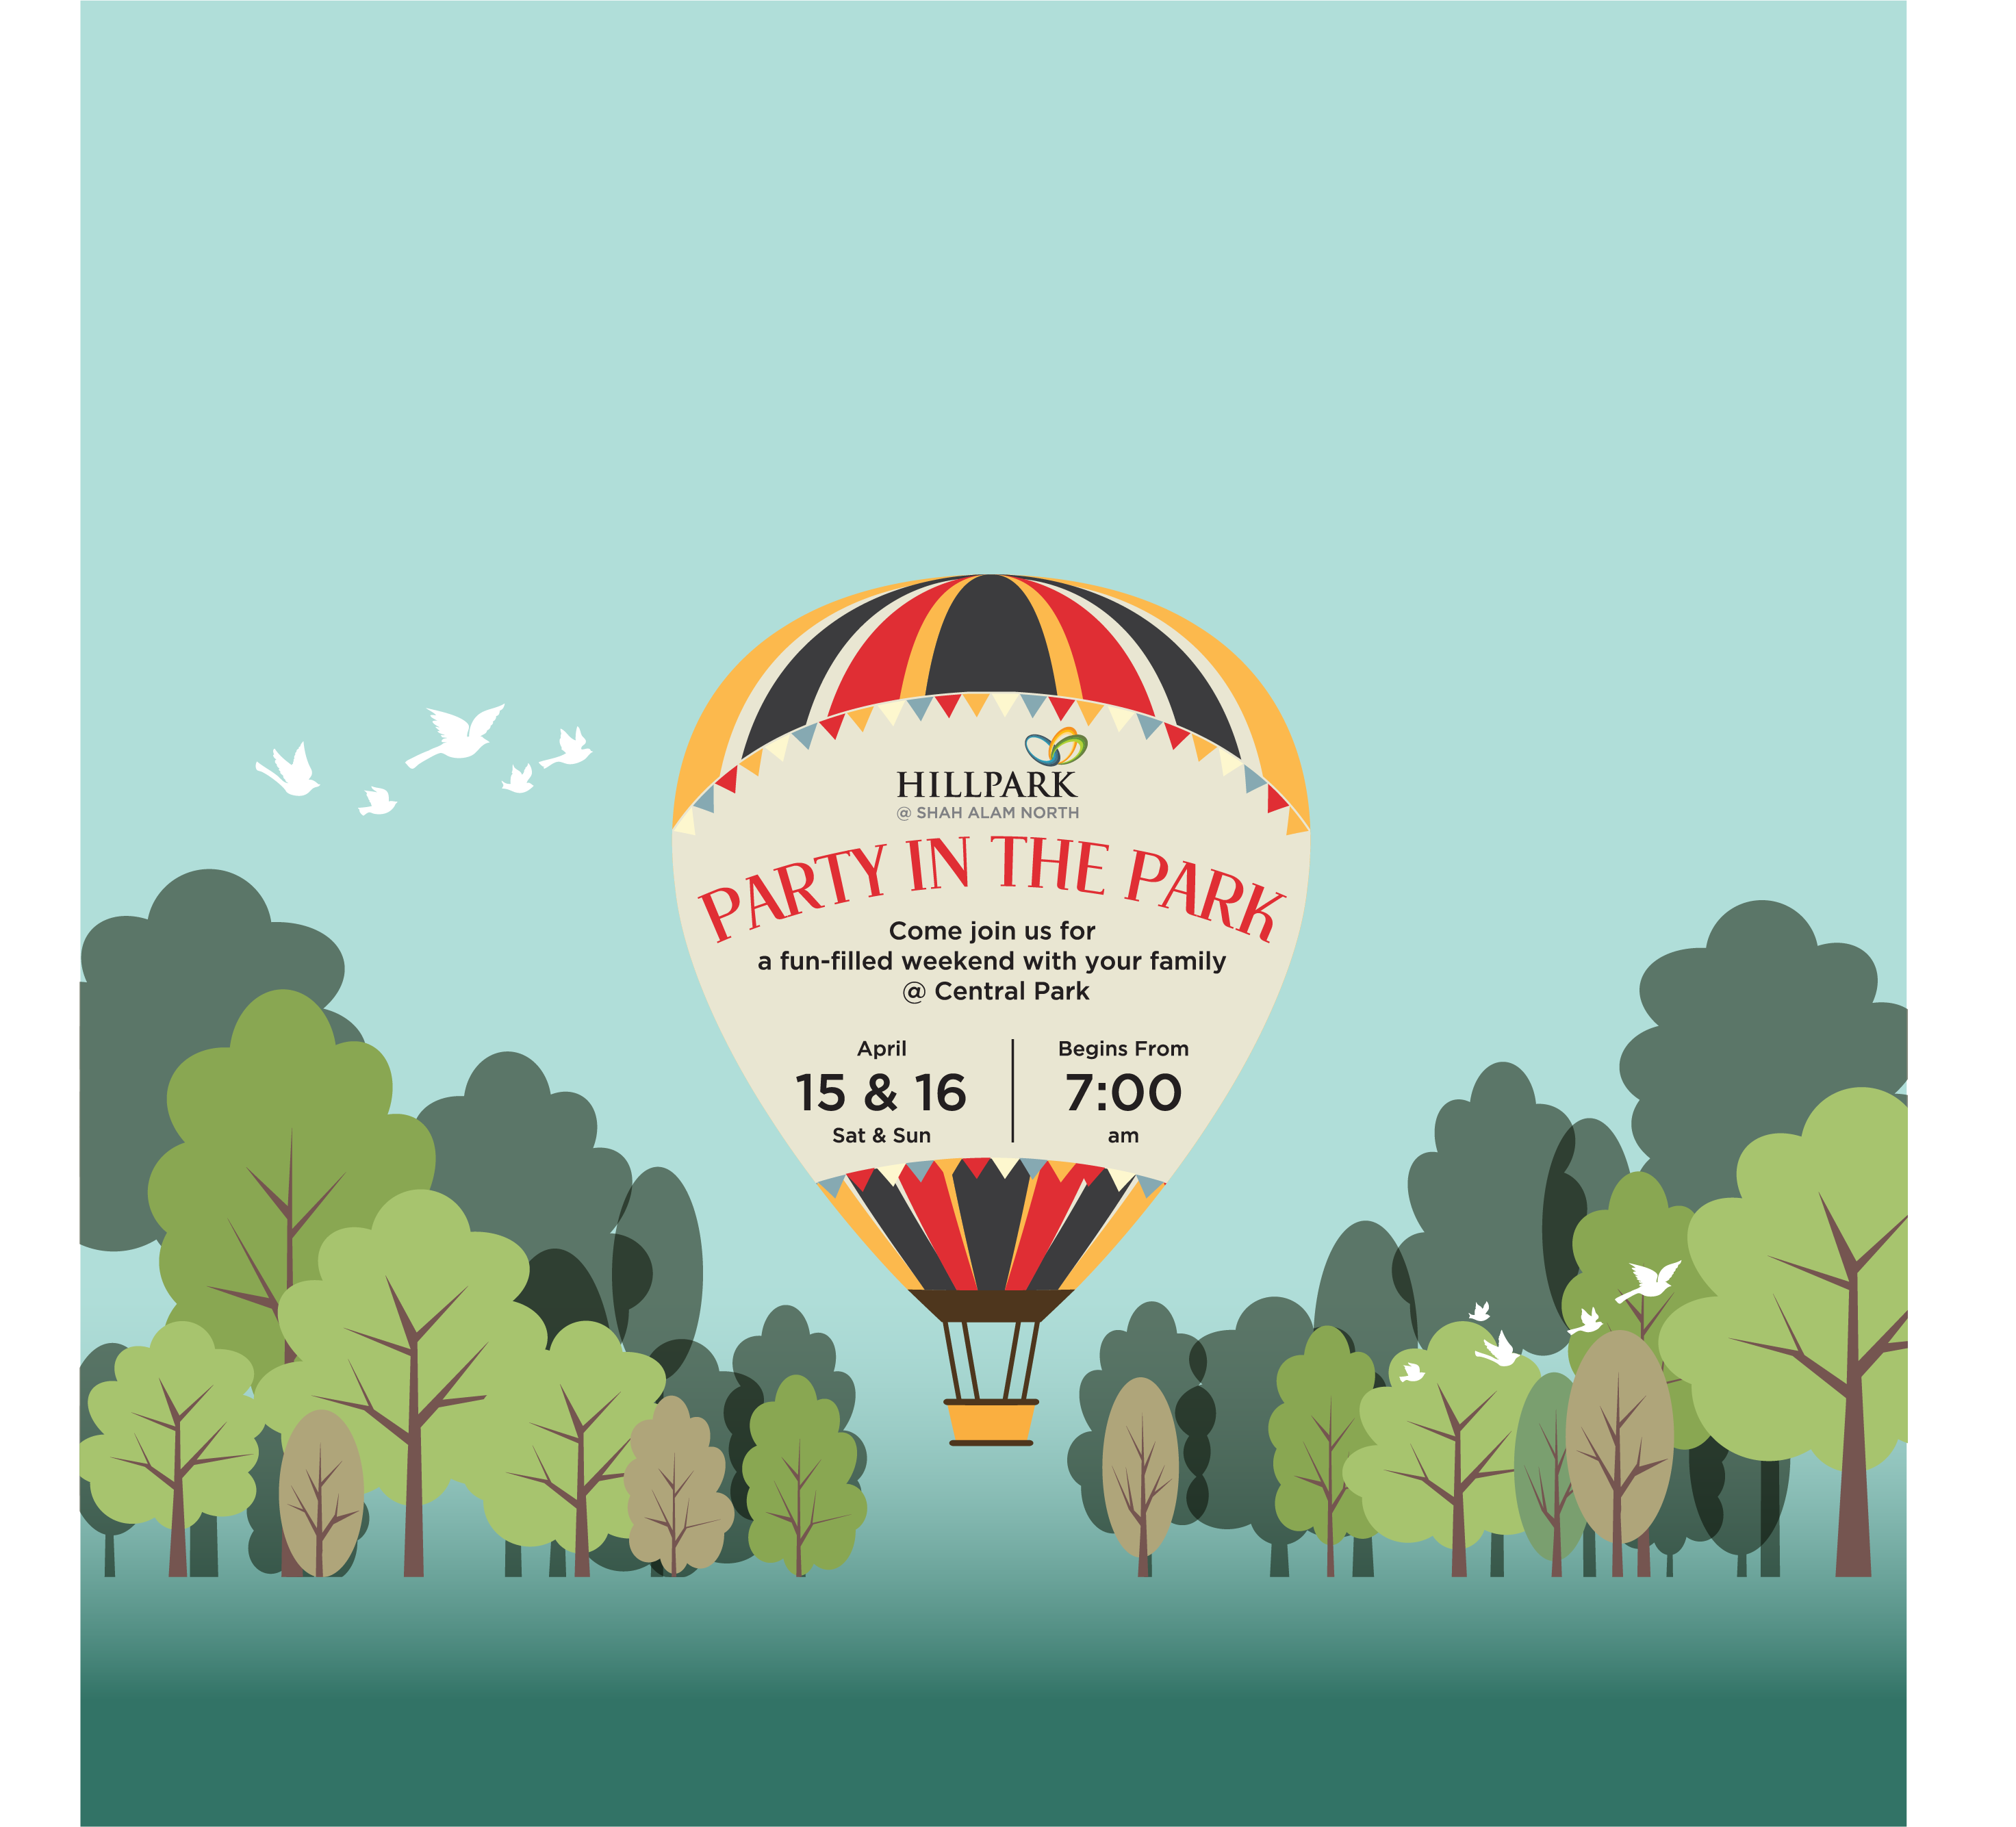 Party in Park_Key Visual to event(web)